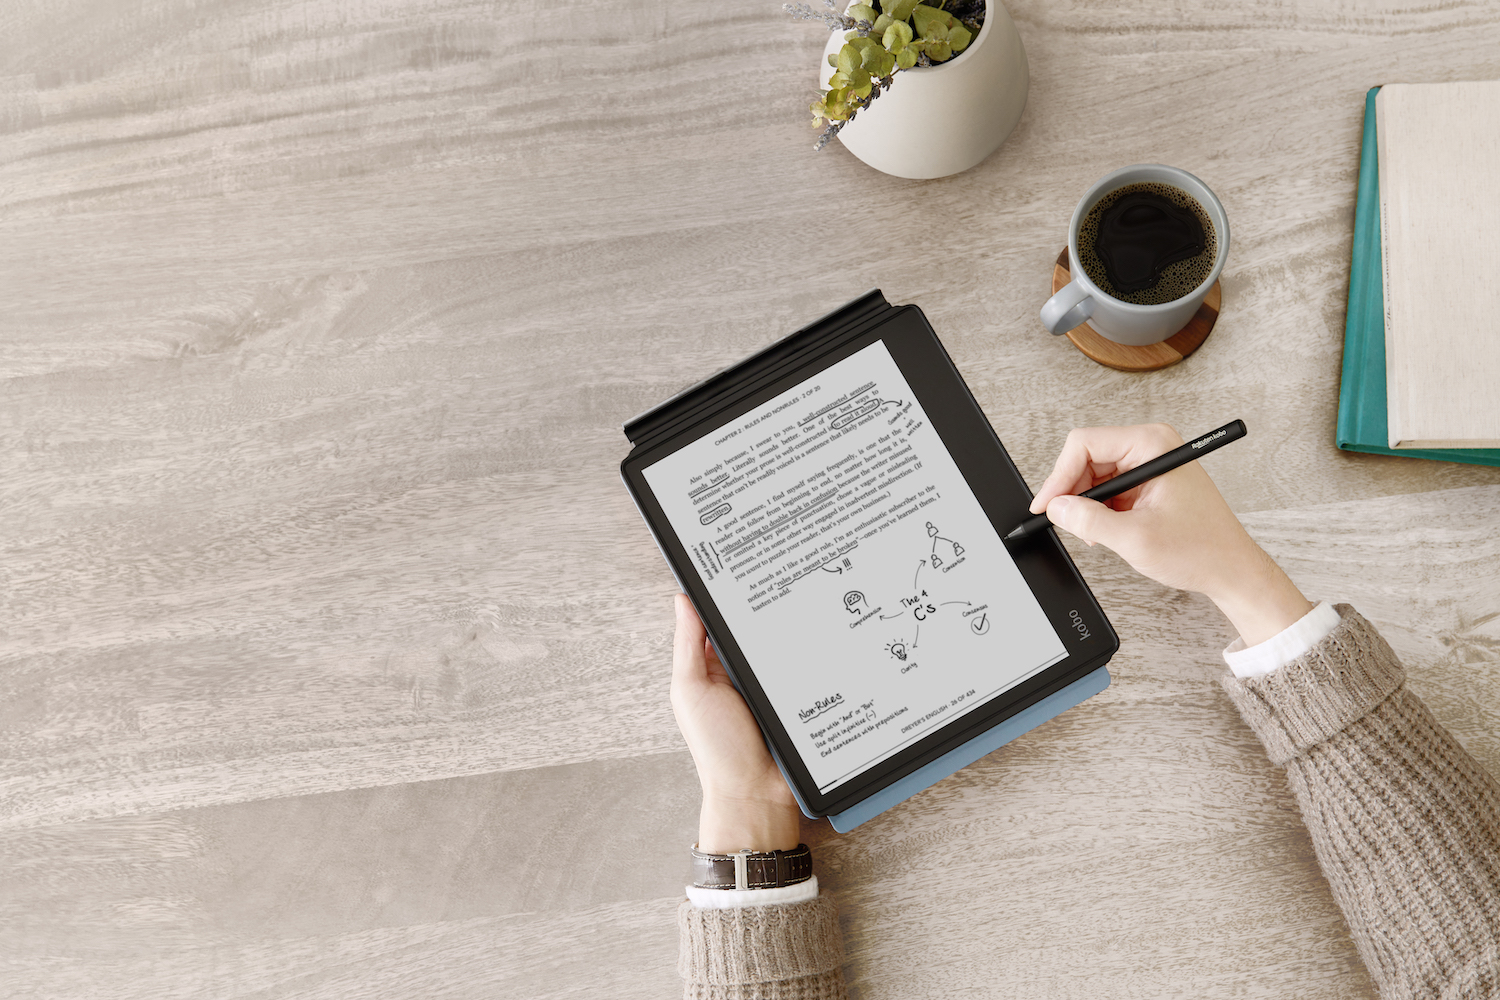 With Kobo Elipsa's beyond-the-page reading experience, readers can use its intuitive stylus to highlight and jot notes in eBooks, PDFs and more.